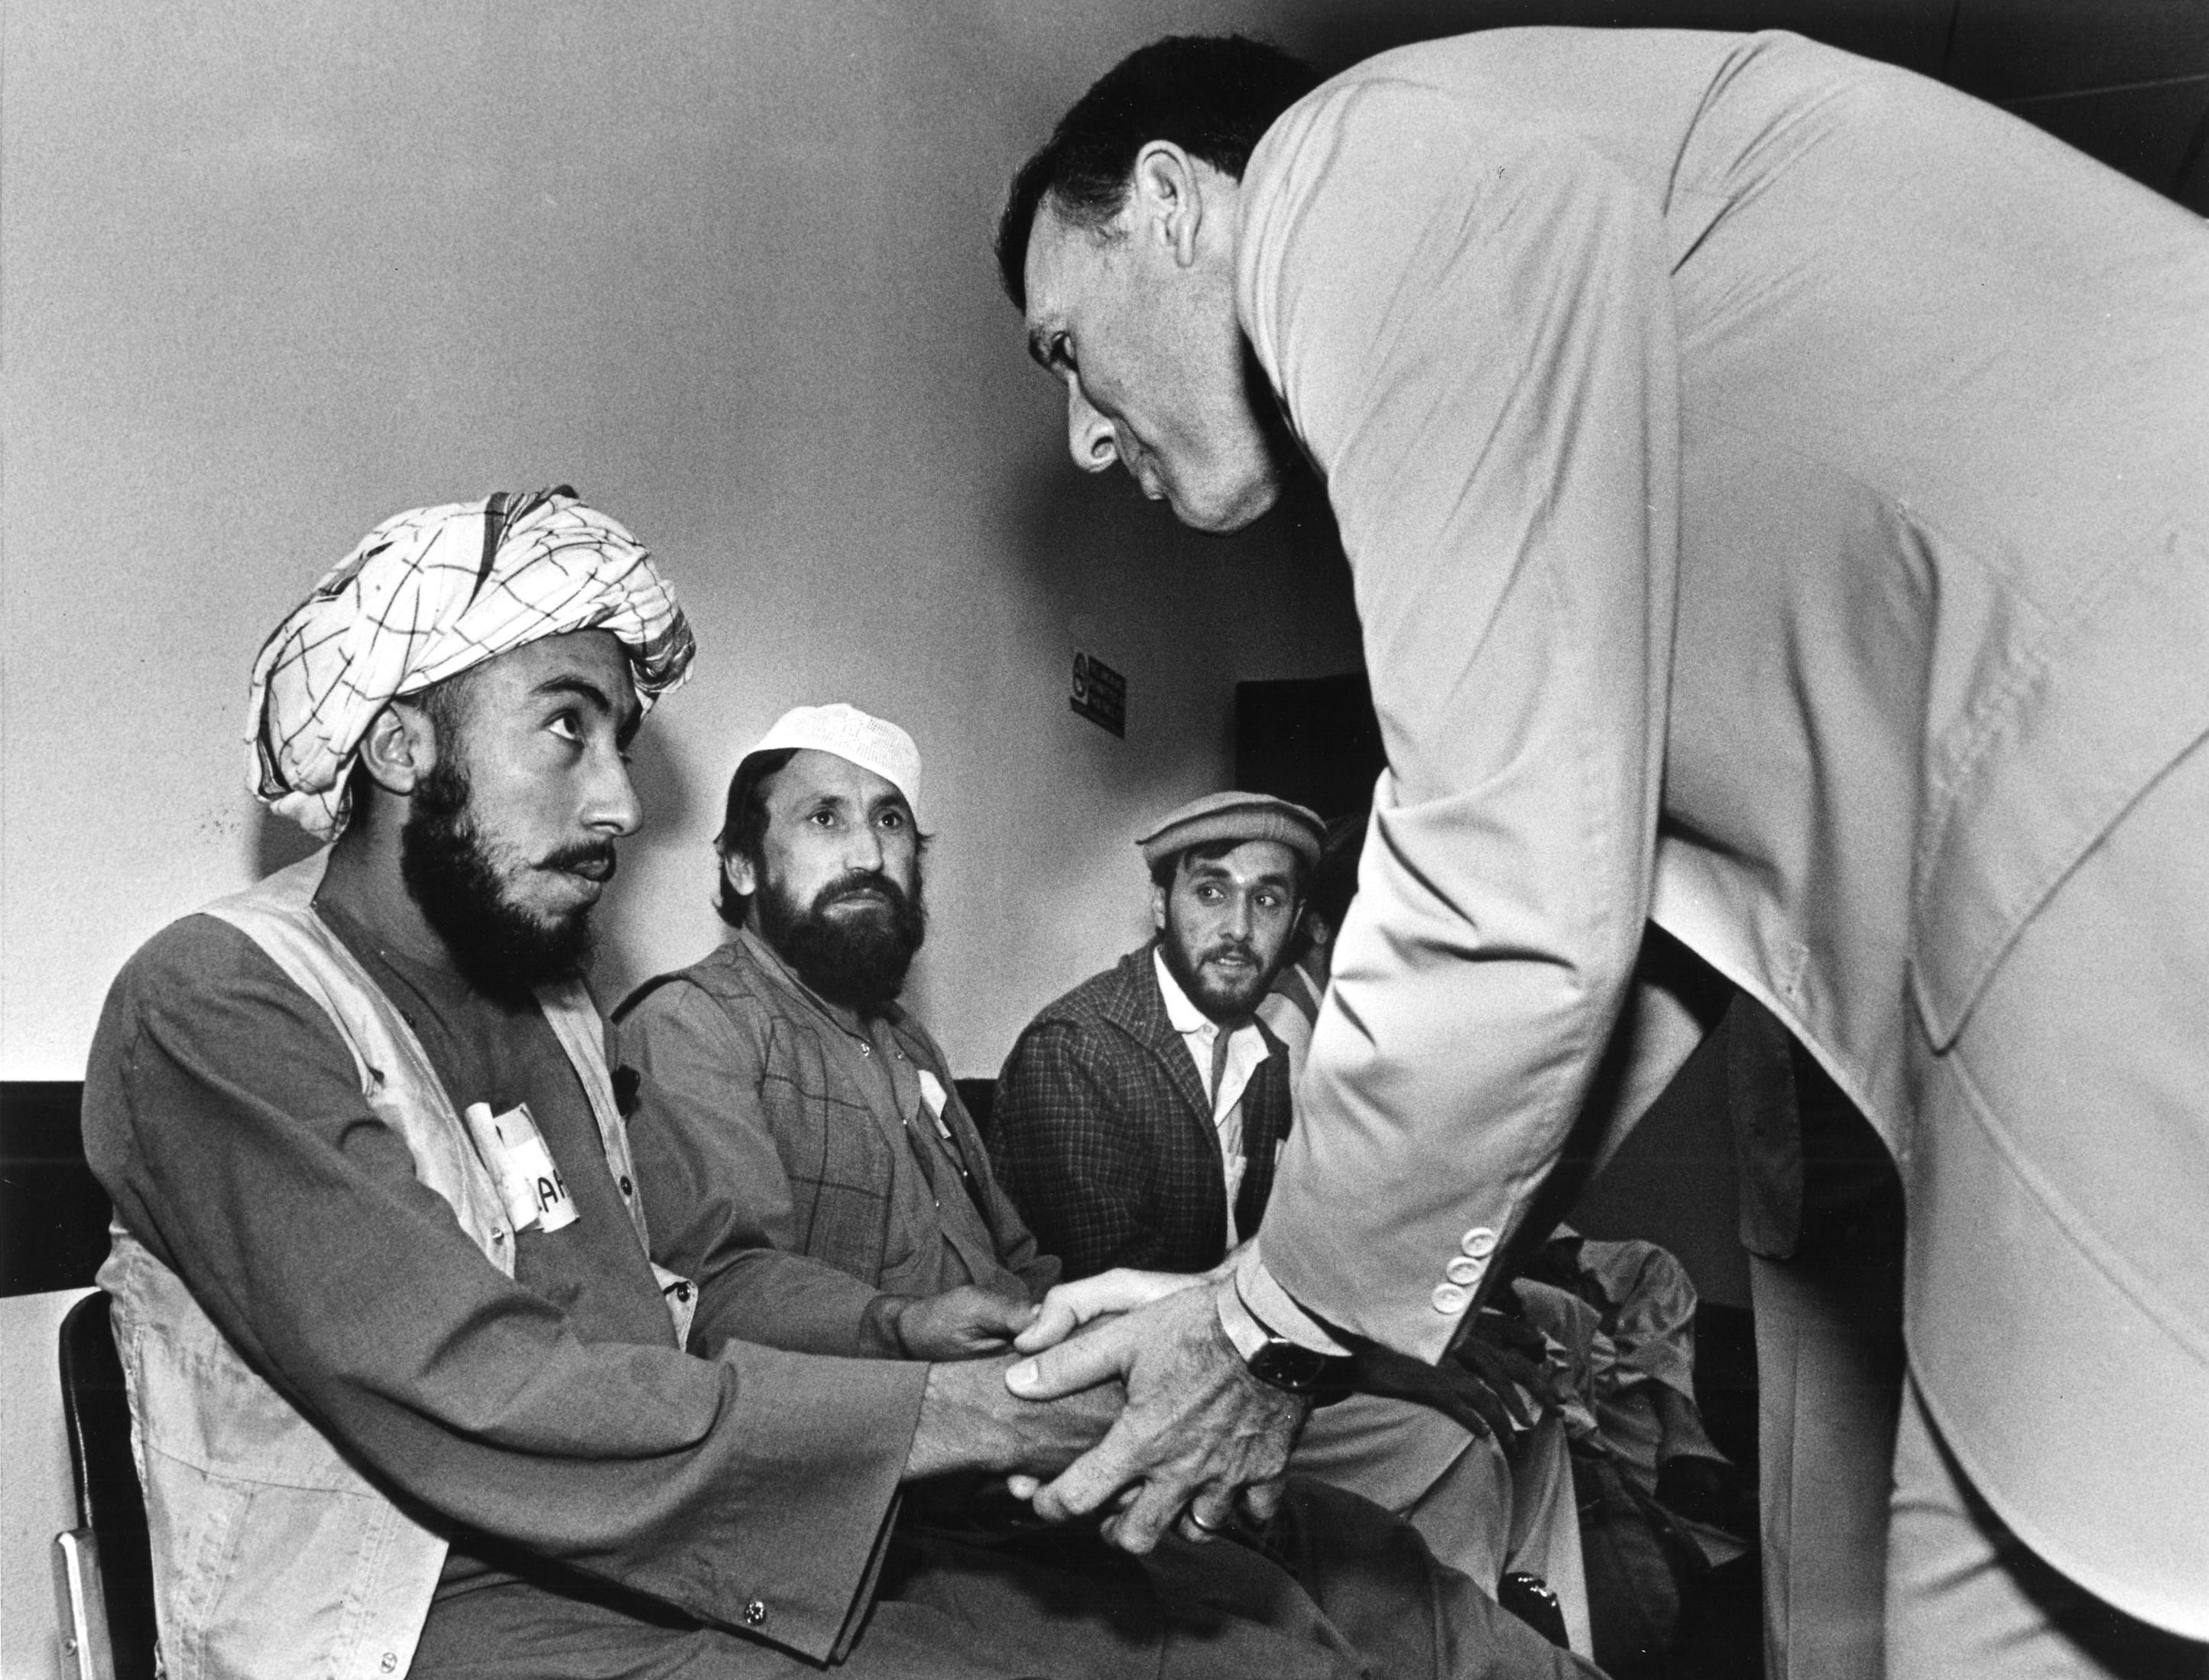 Congressman Jon Kyl greets Afghan rebels at Phoenix Sky Harbor Airport, May 26, 1987.